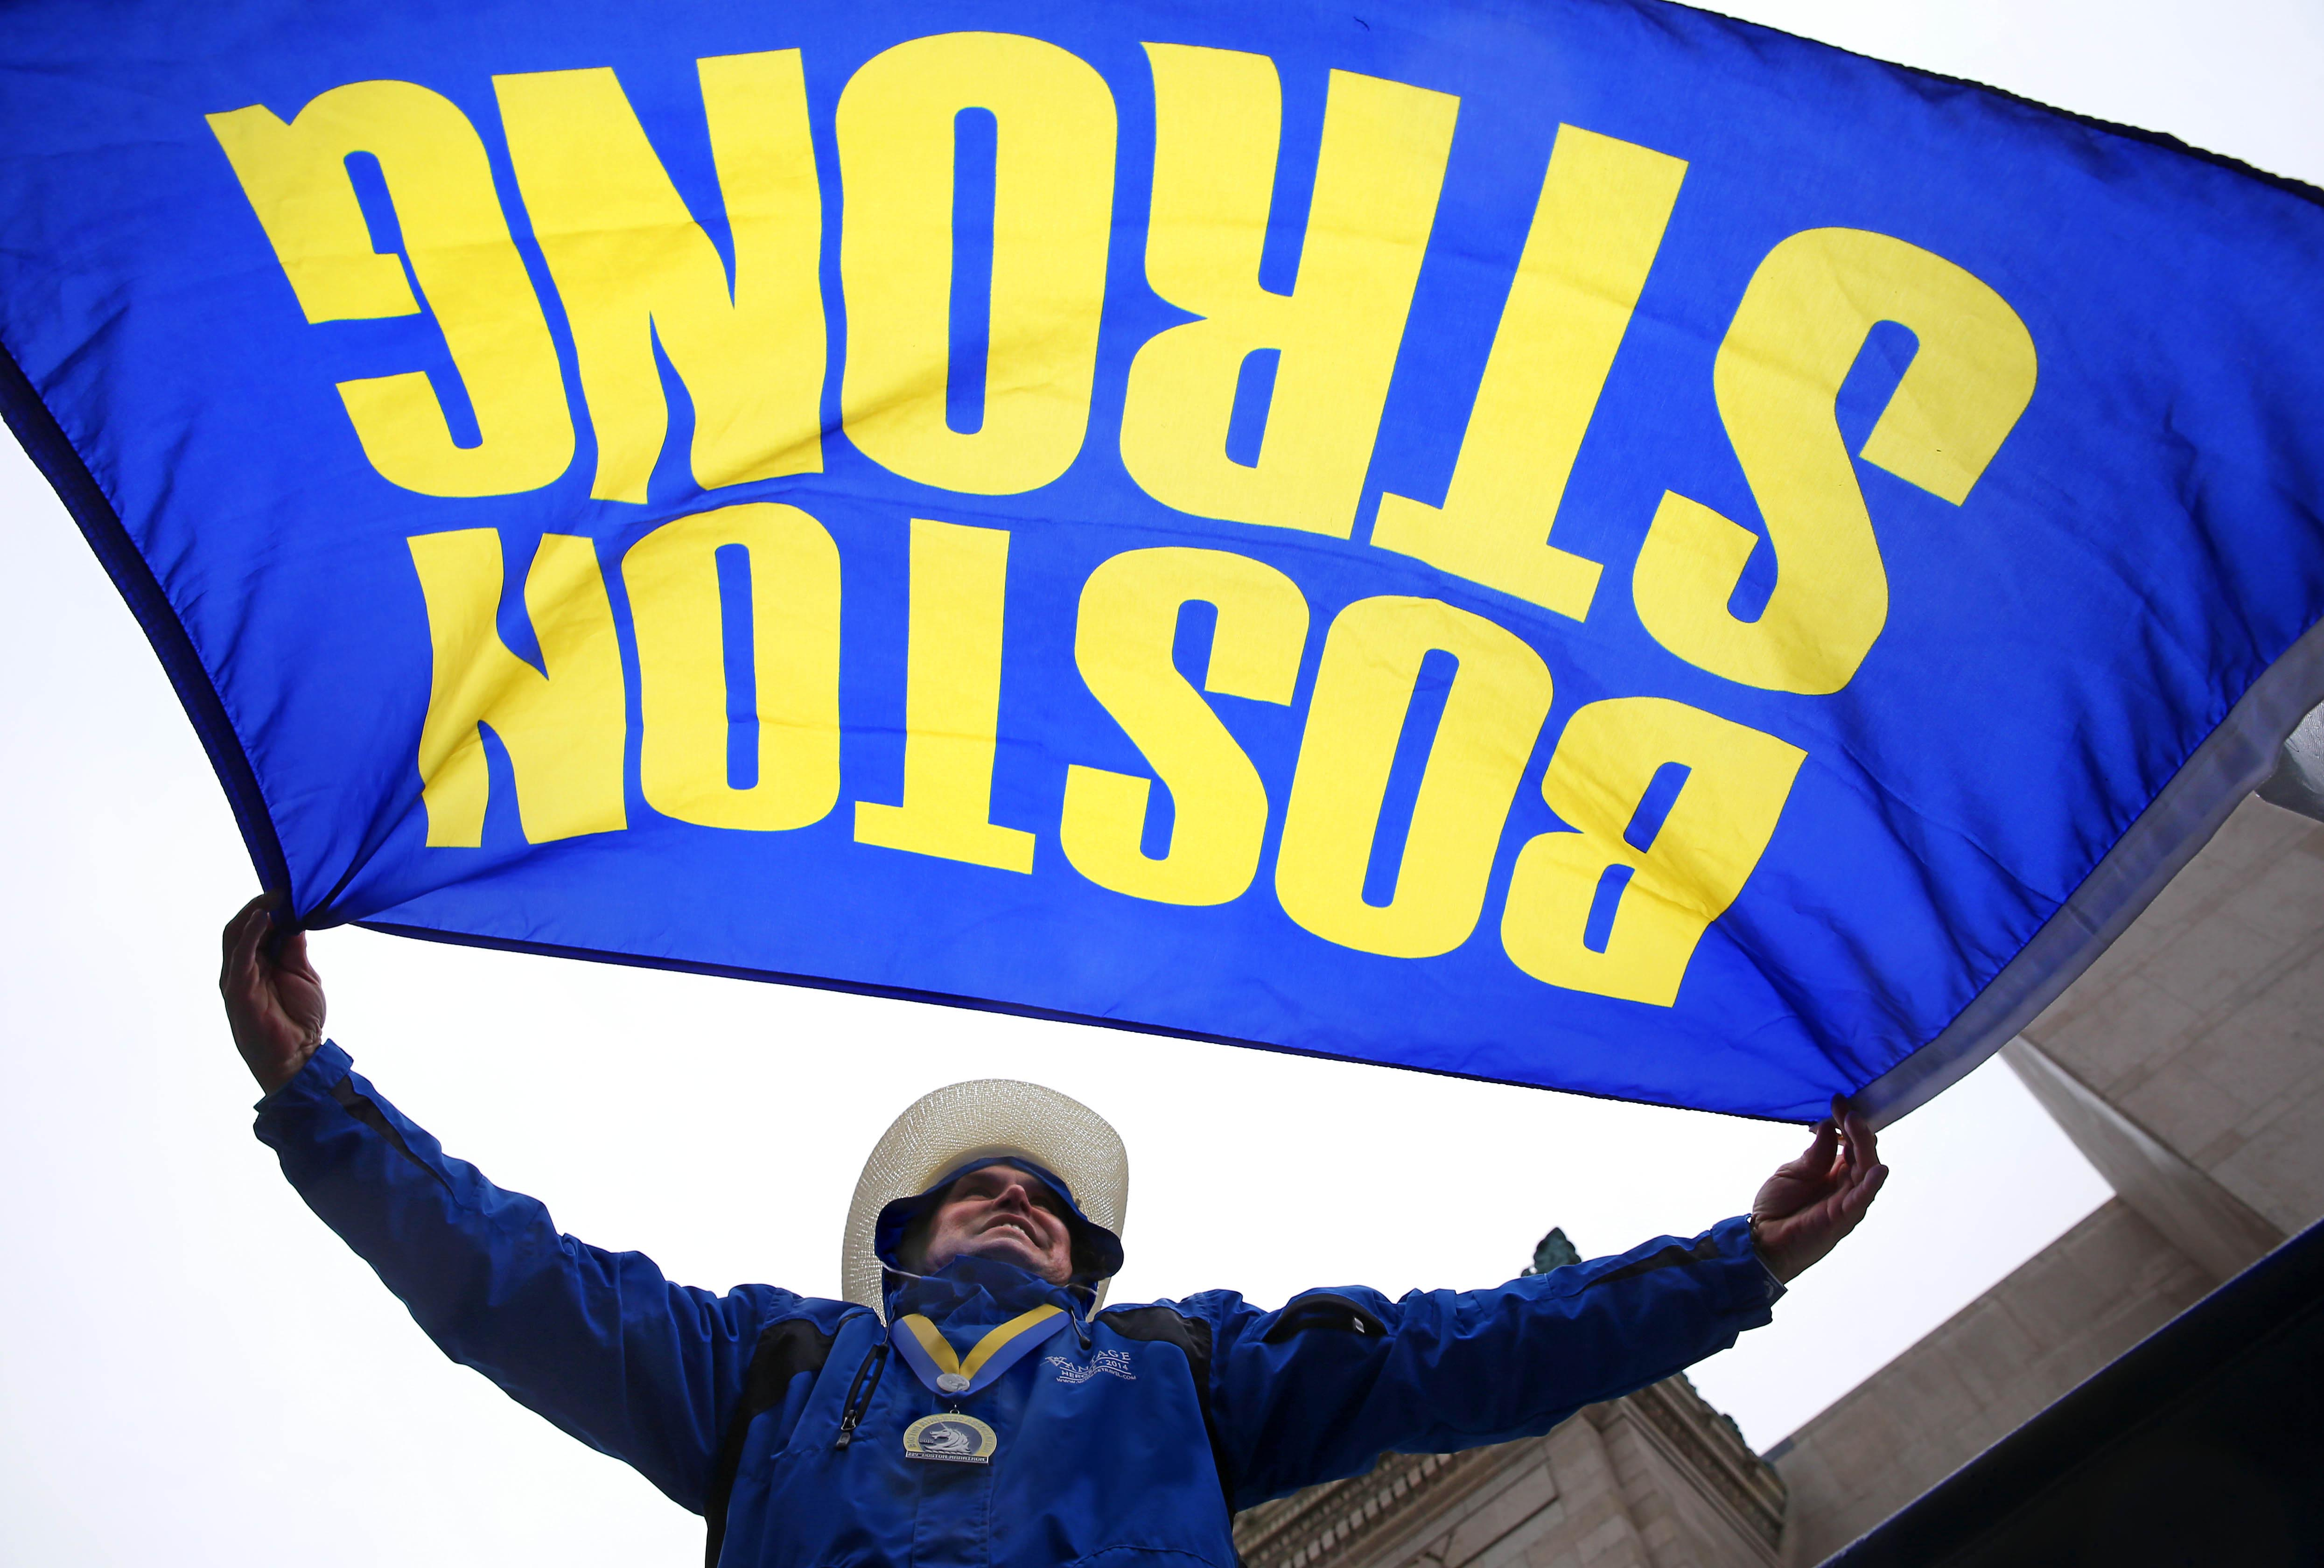 Carlos Arredondo cheers on runners in 2015. Arredondo was among the quick-thinking first-responders in the 2013 attack.